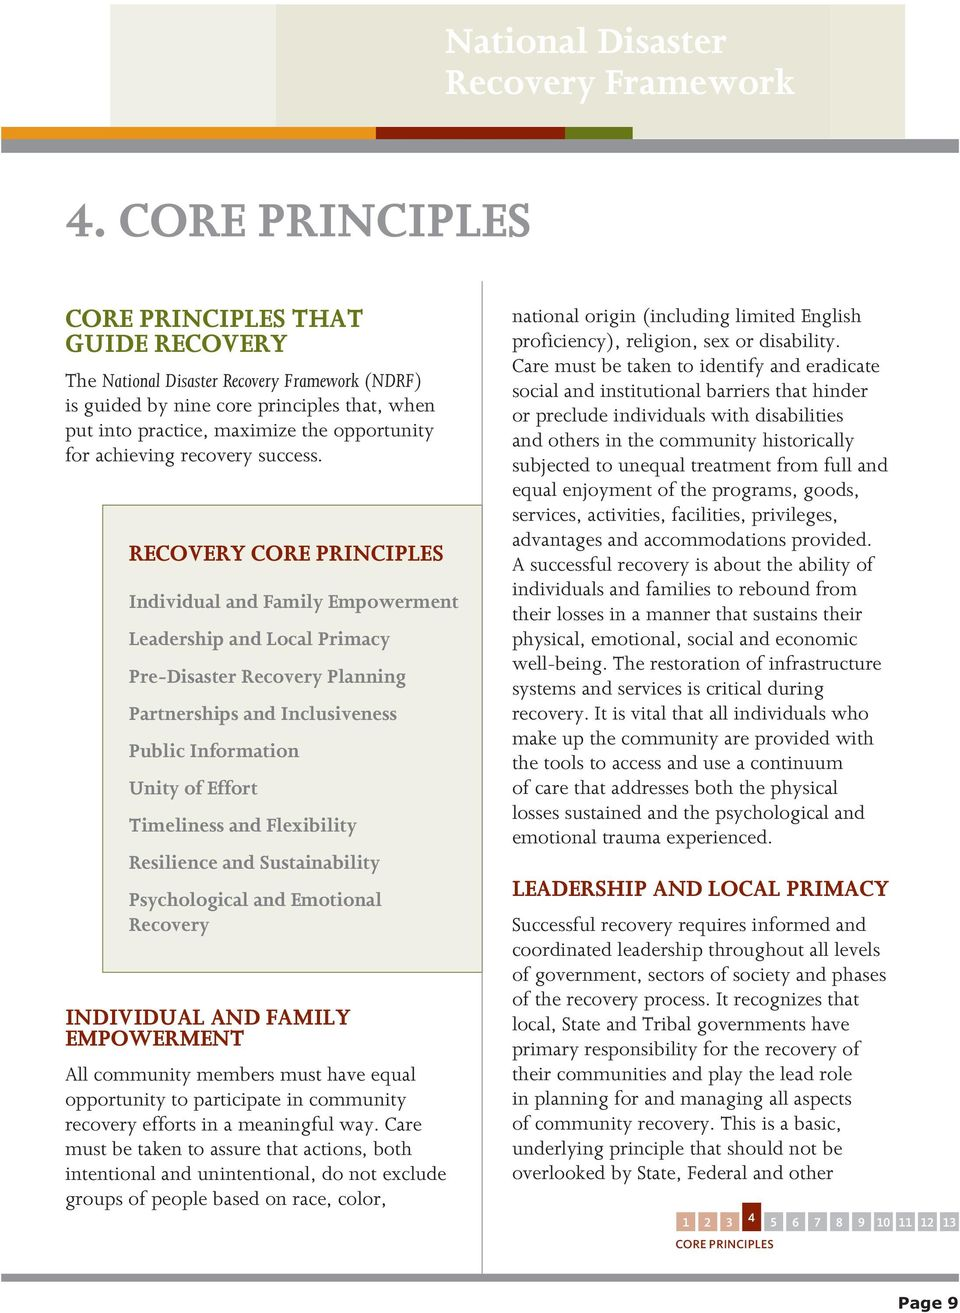 RECOVERY CORE PRINCIPLES. Individual and Family Empowerment. Leadership and Local Primacy. Pre-Disaster Recovery Planning. Partnerships and Inclusiveness. Public Information. Unity of Effort.